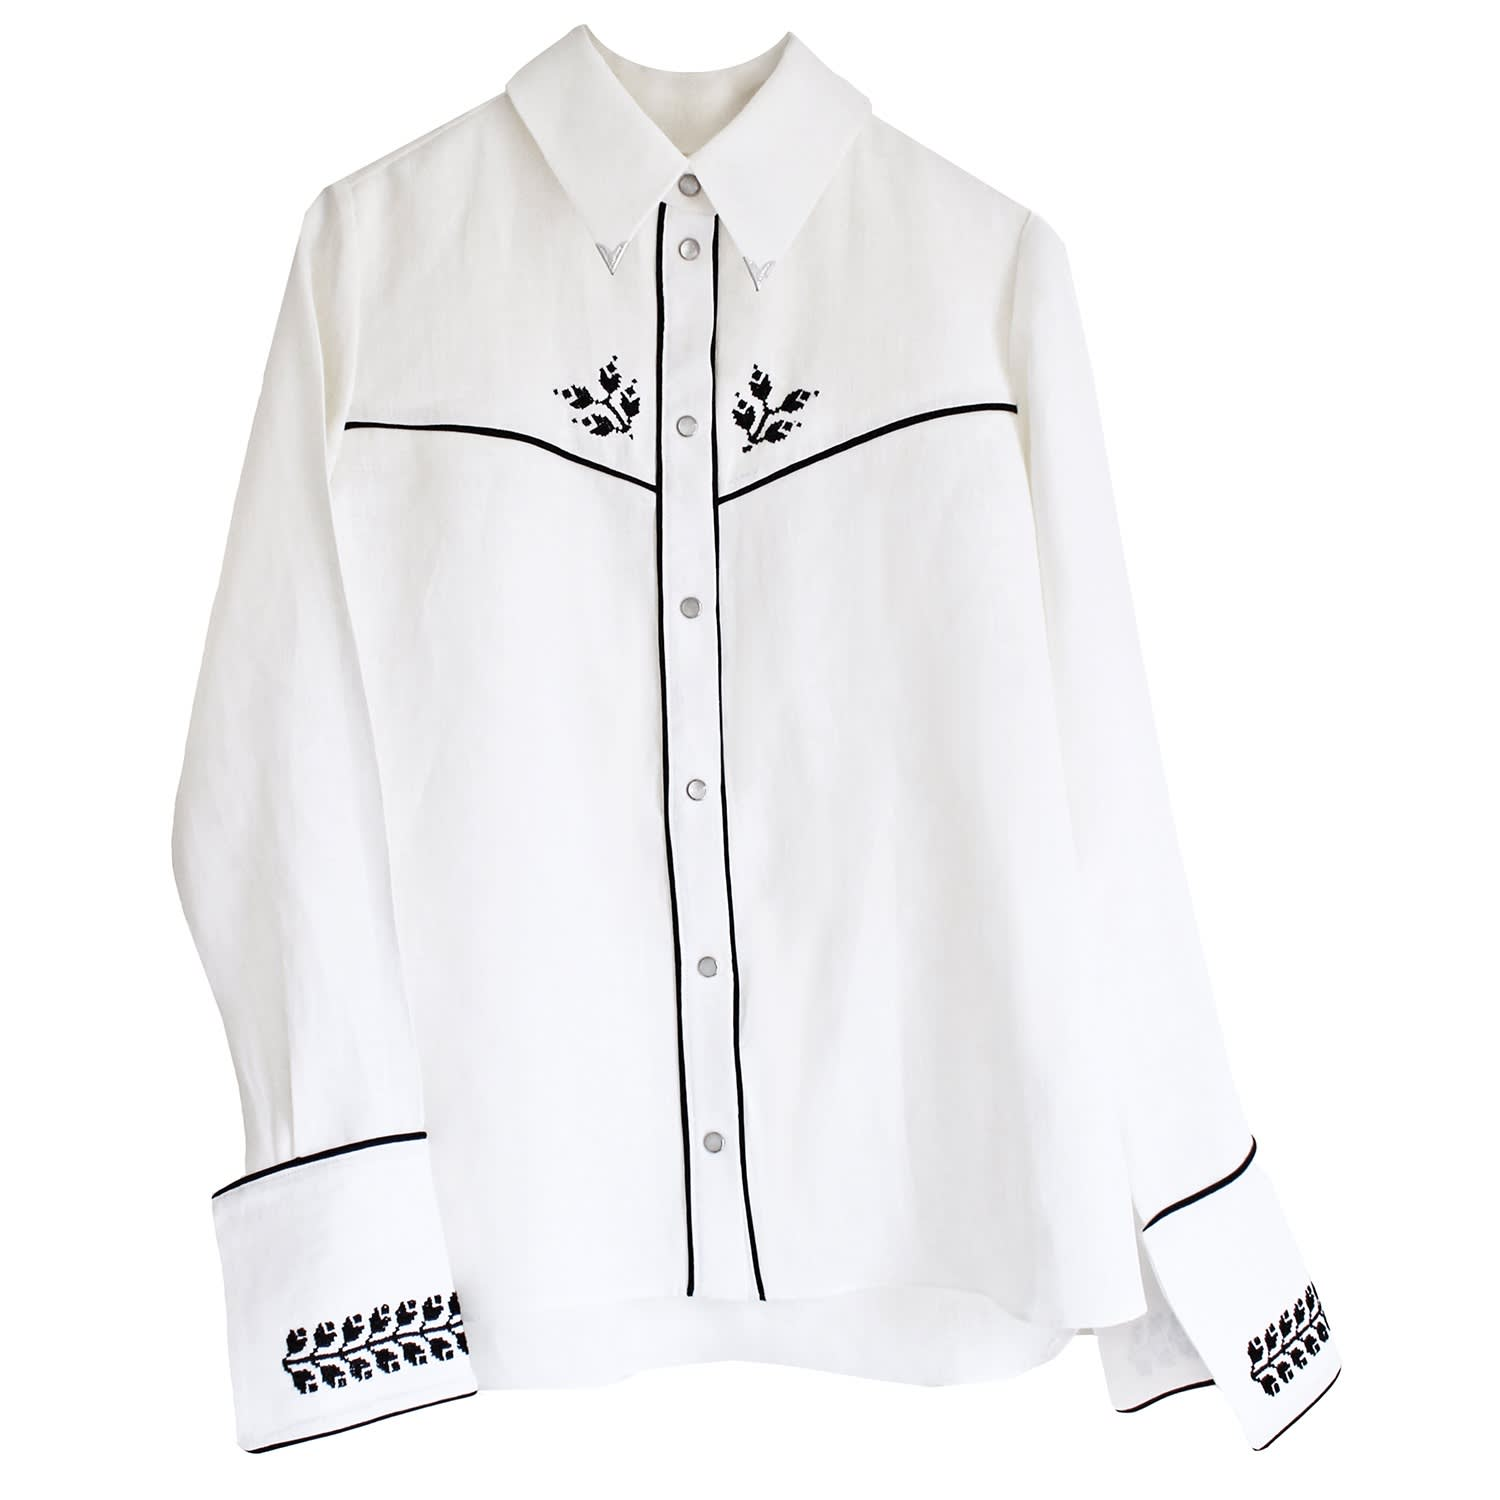 detailed look bd6fc b5df2 Embroidered Cowboy Shirt White by Florence Bridge